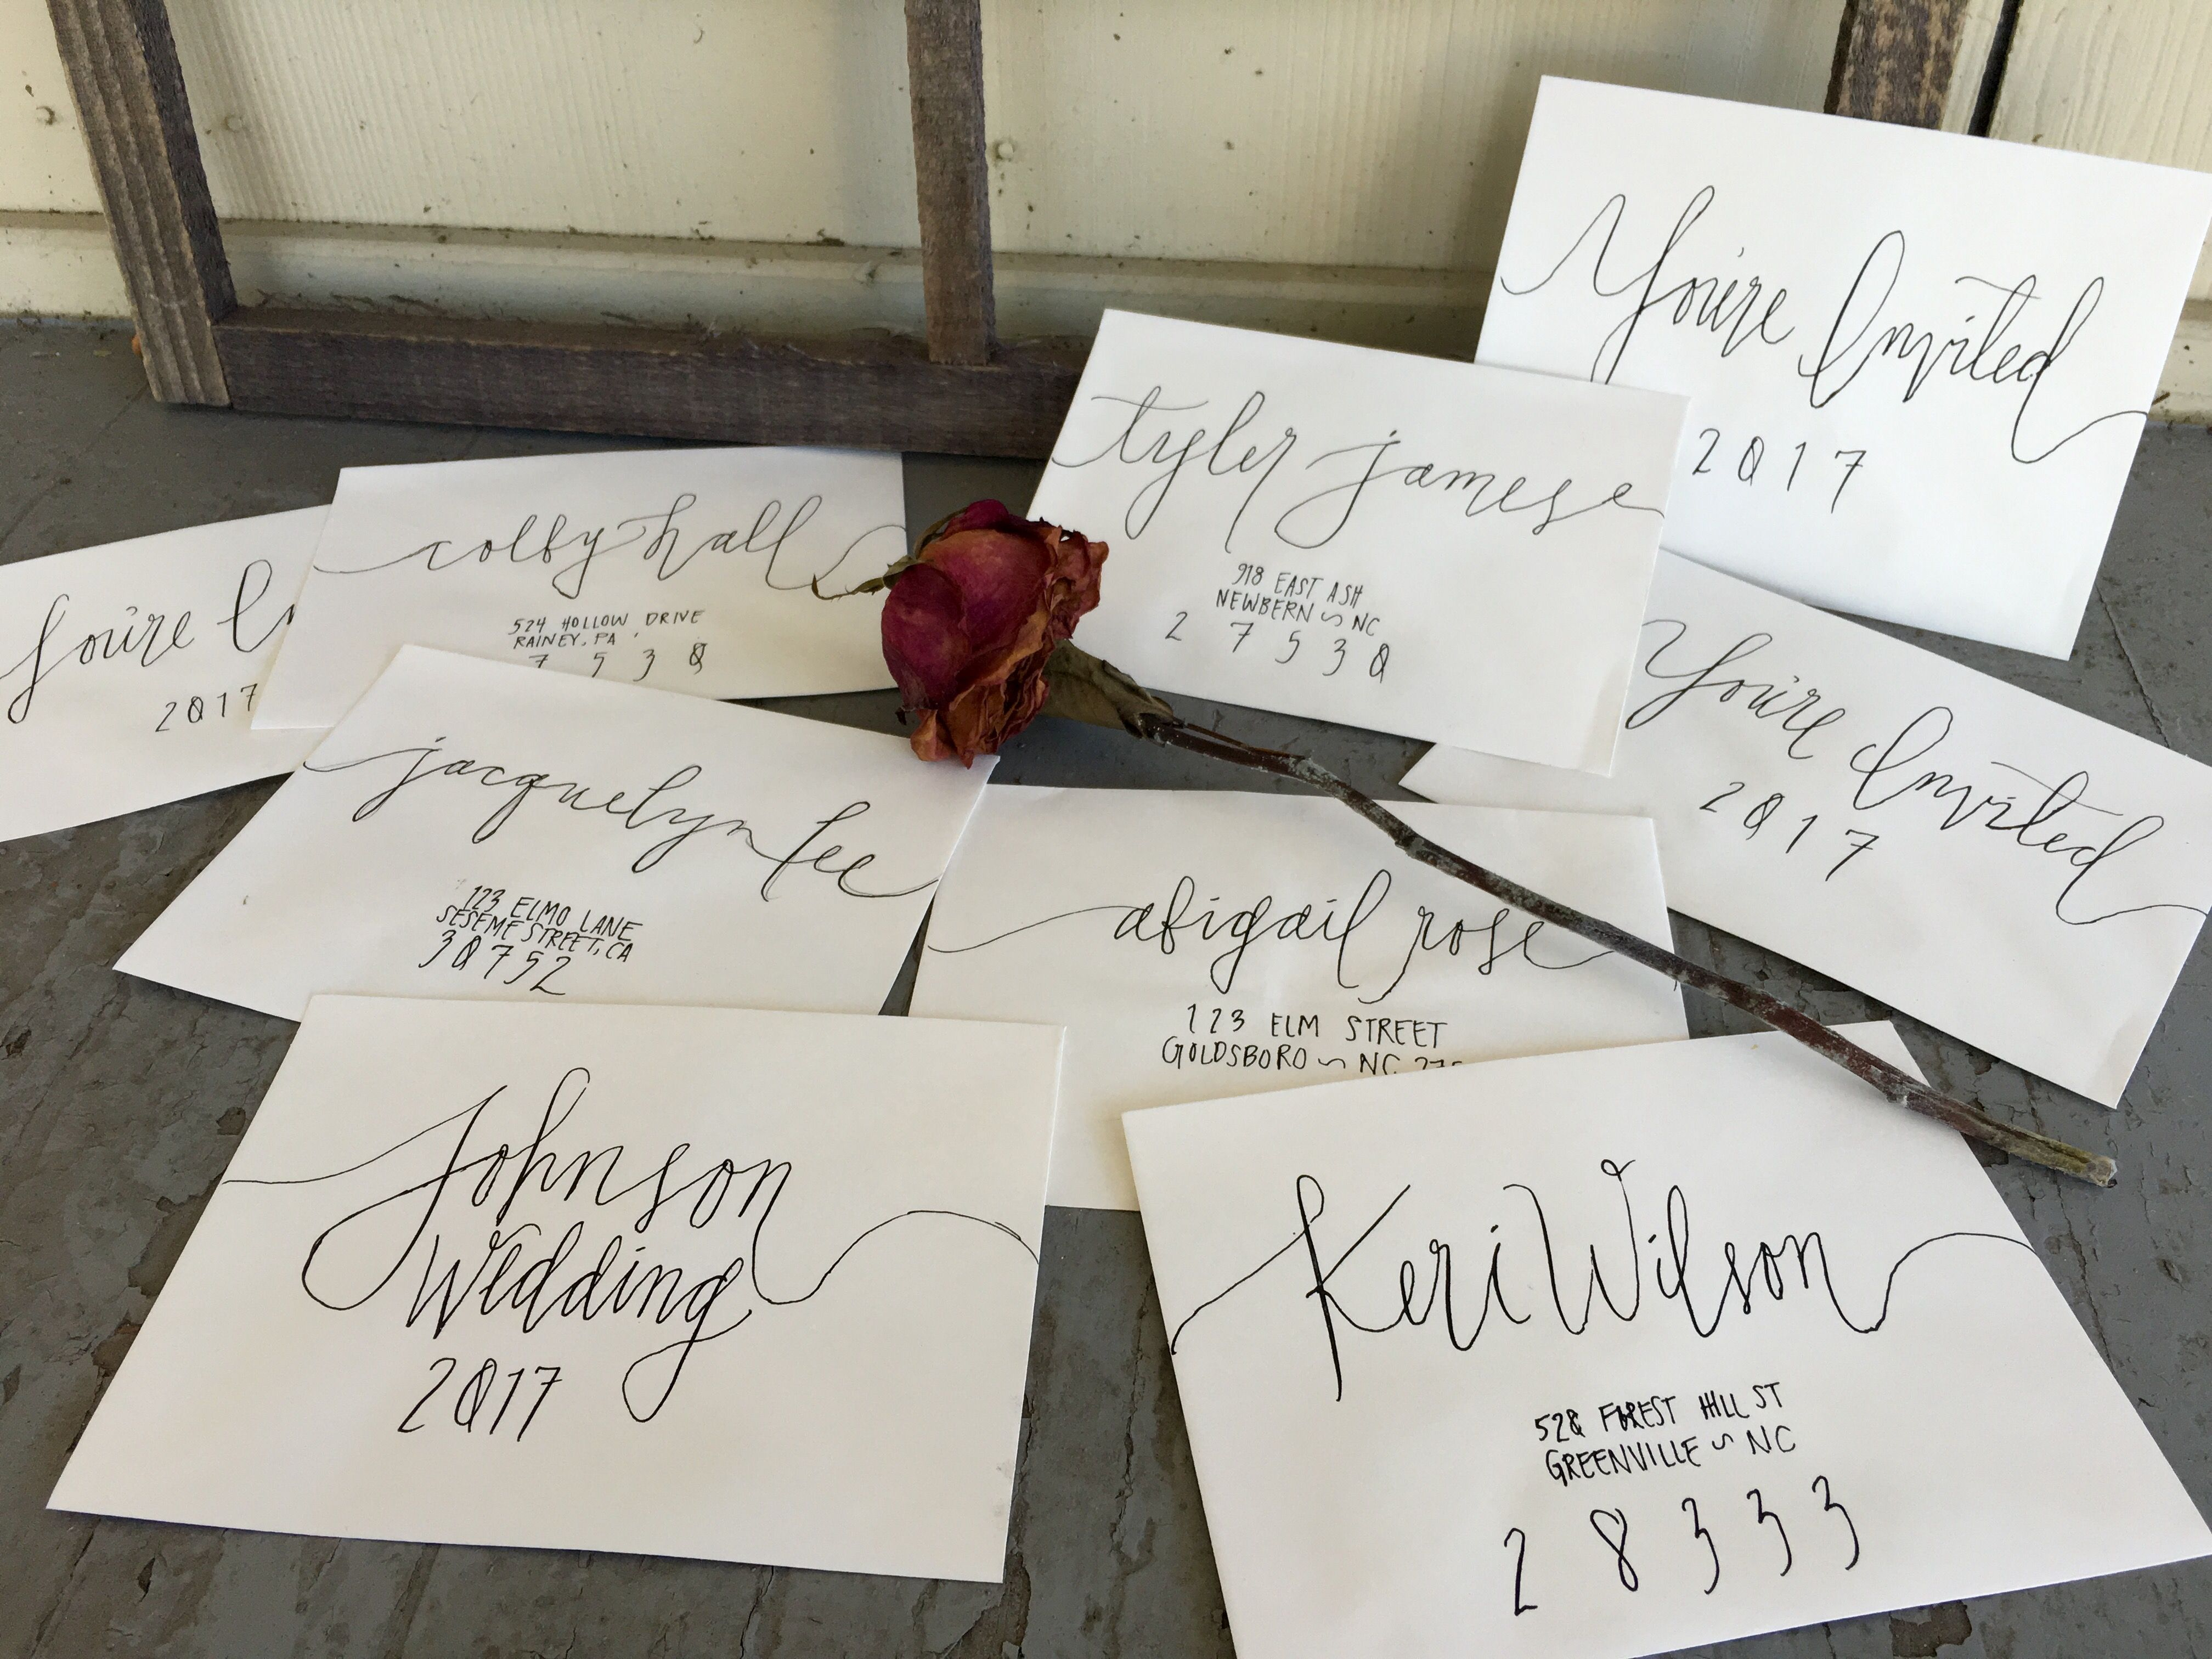 Handwritten Calligraphy Wedding Invitations Envelope Addressing White Envelopes Black Ink